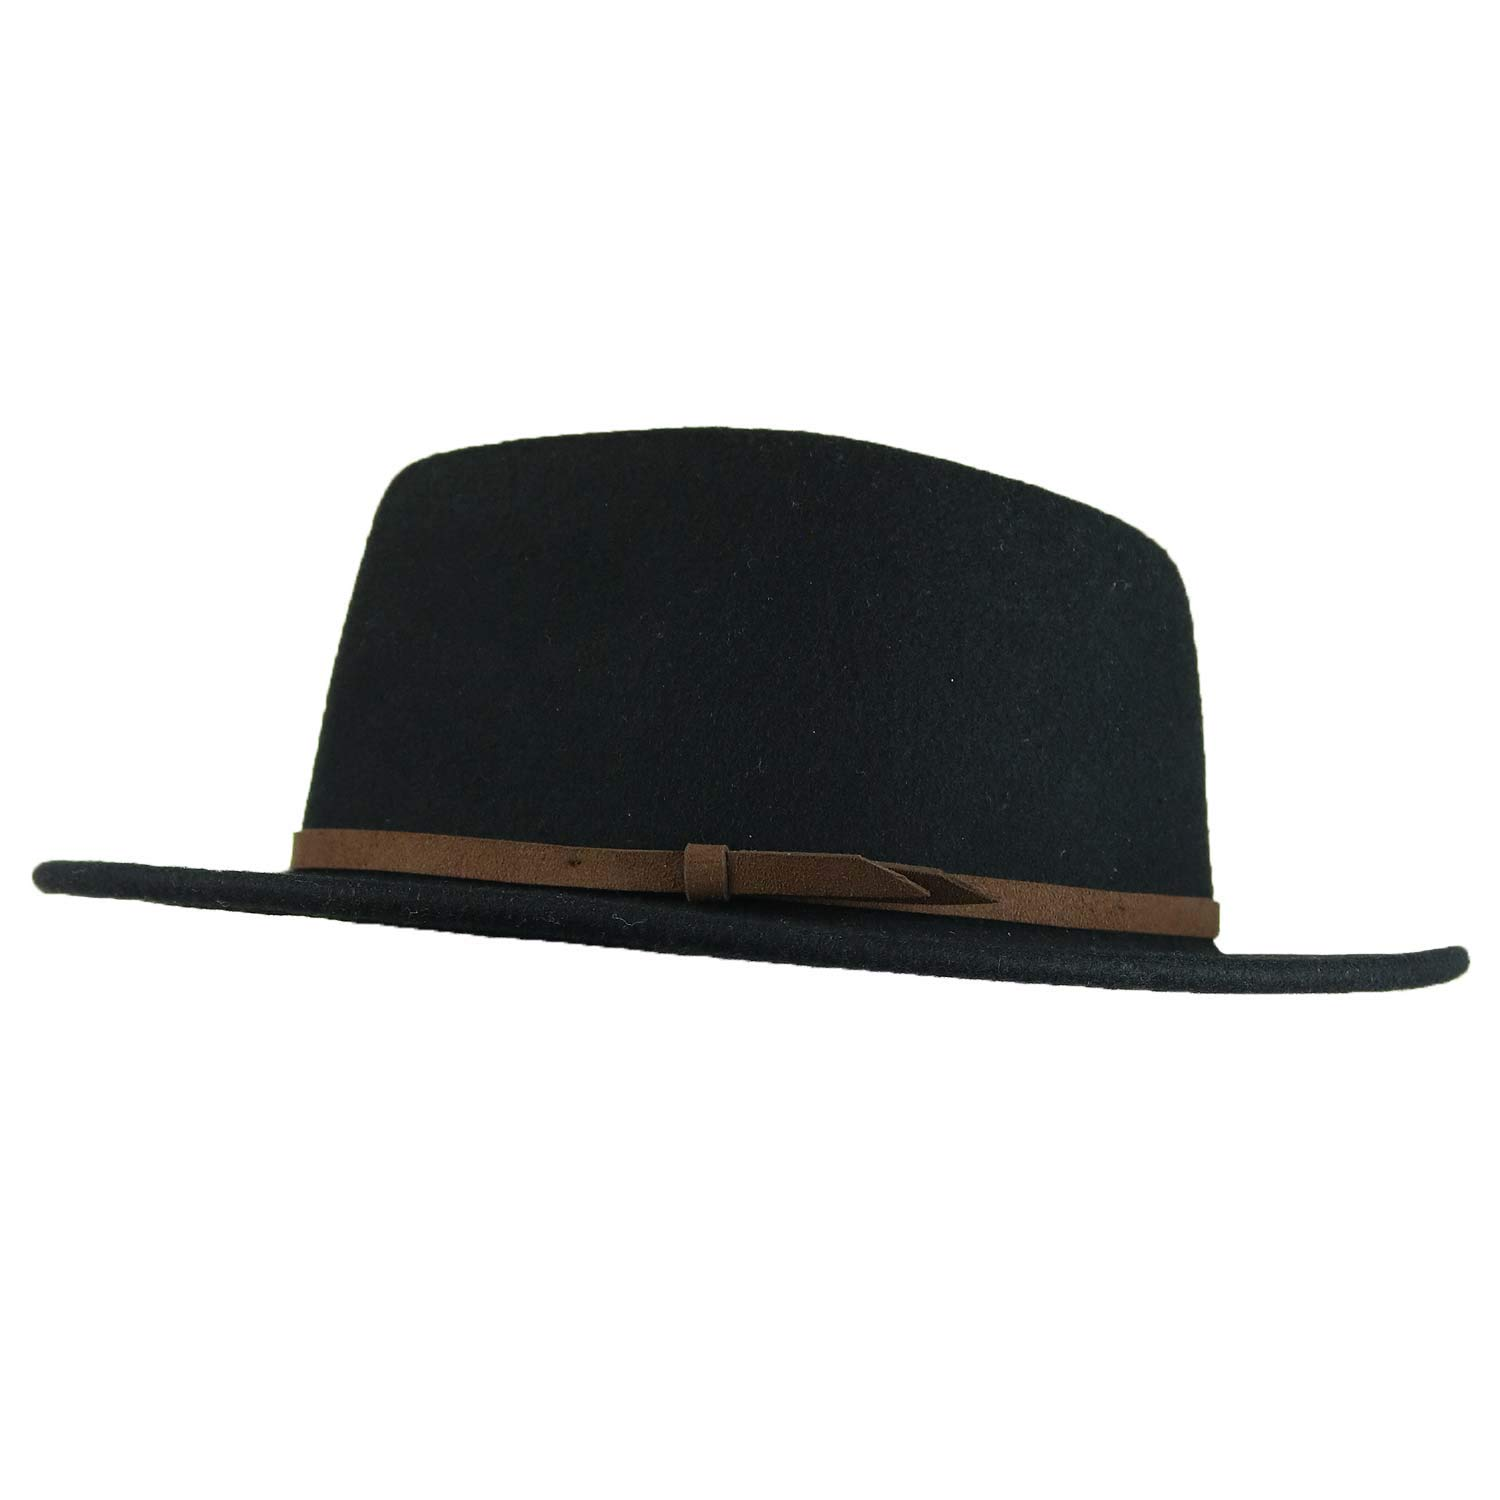 00b5daef159a3 Fedora Hats for Men by King   Fifth